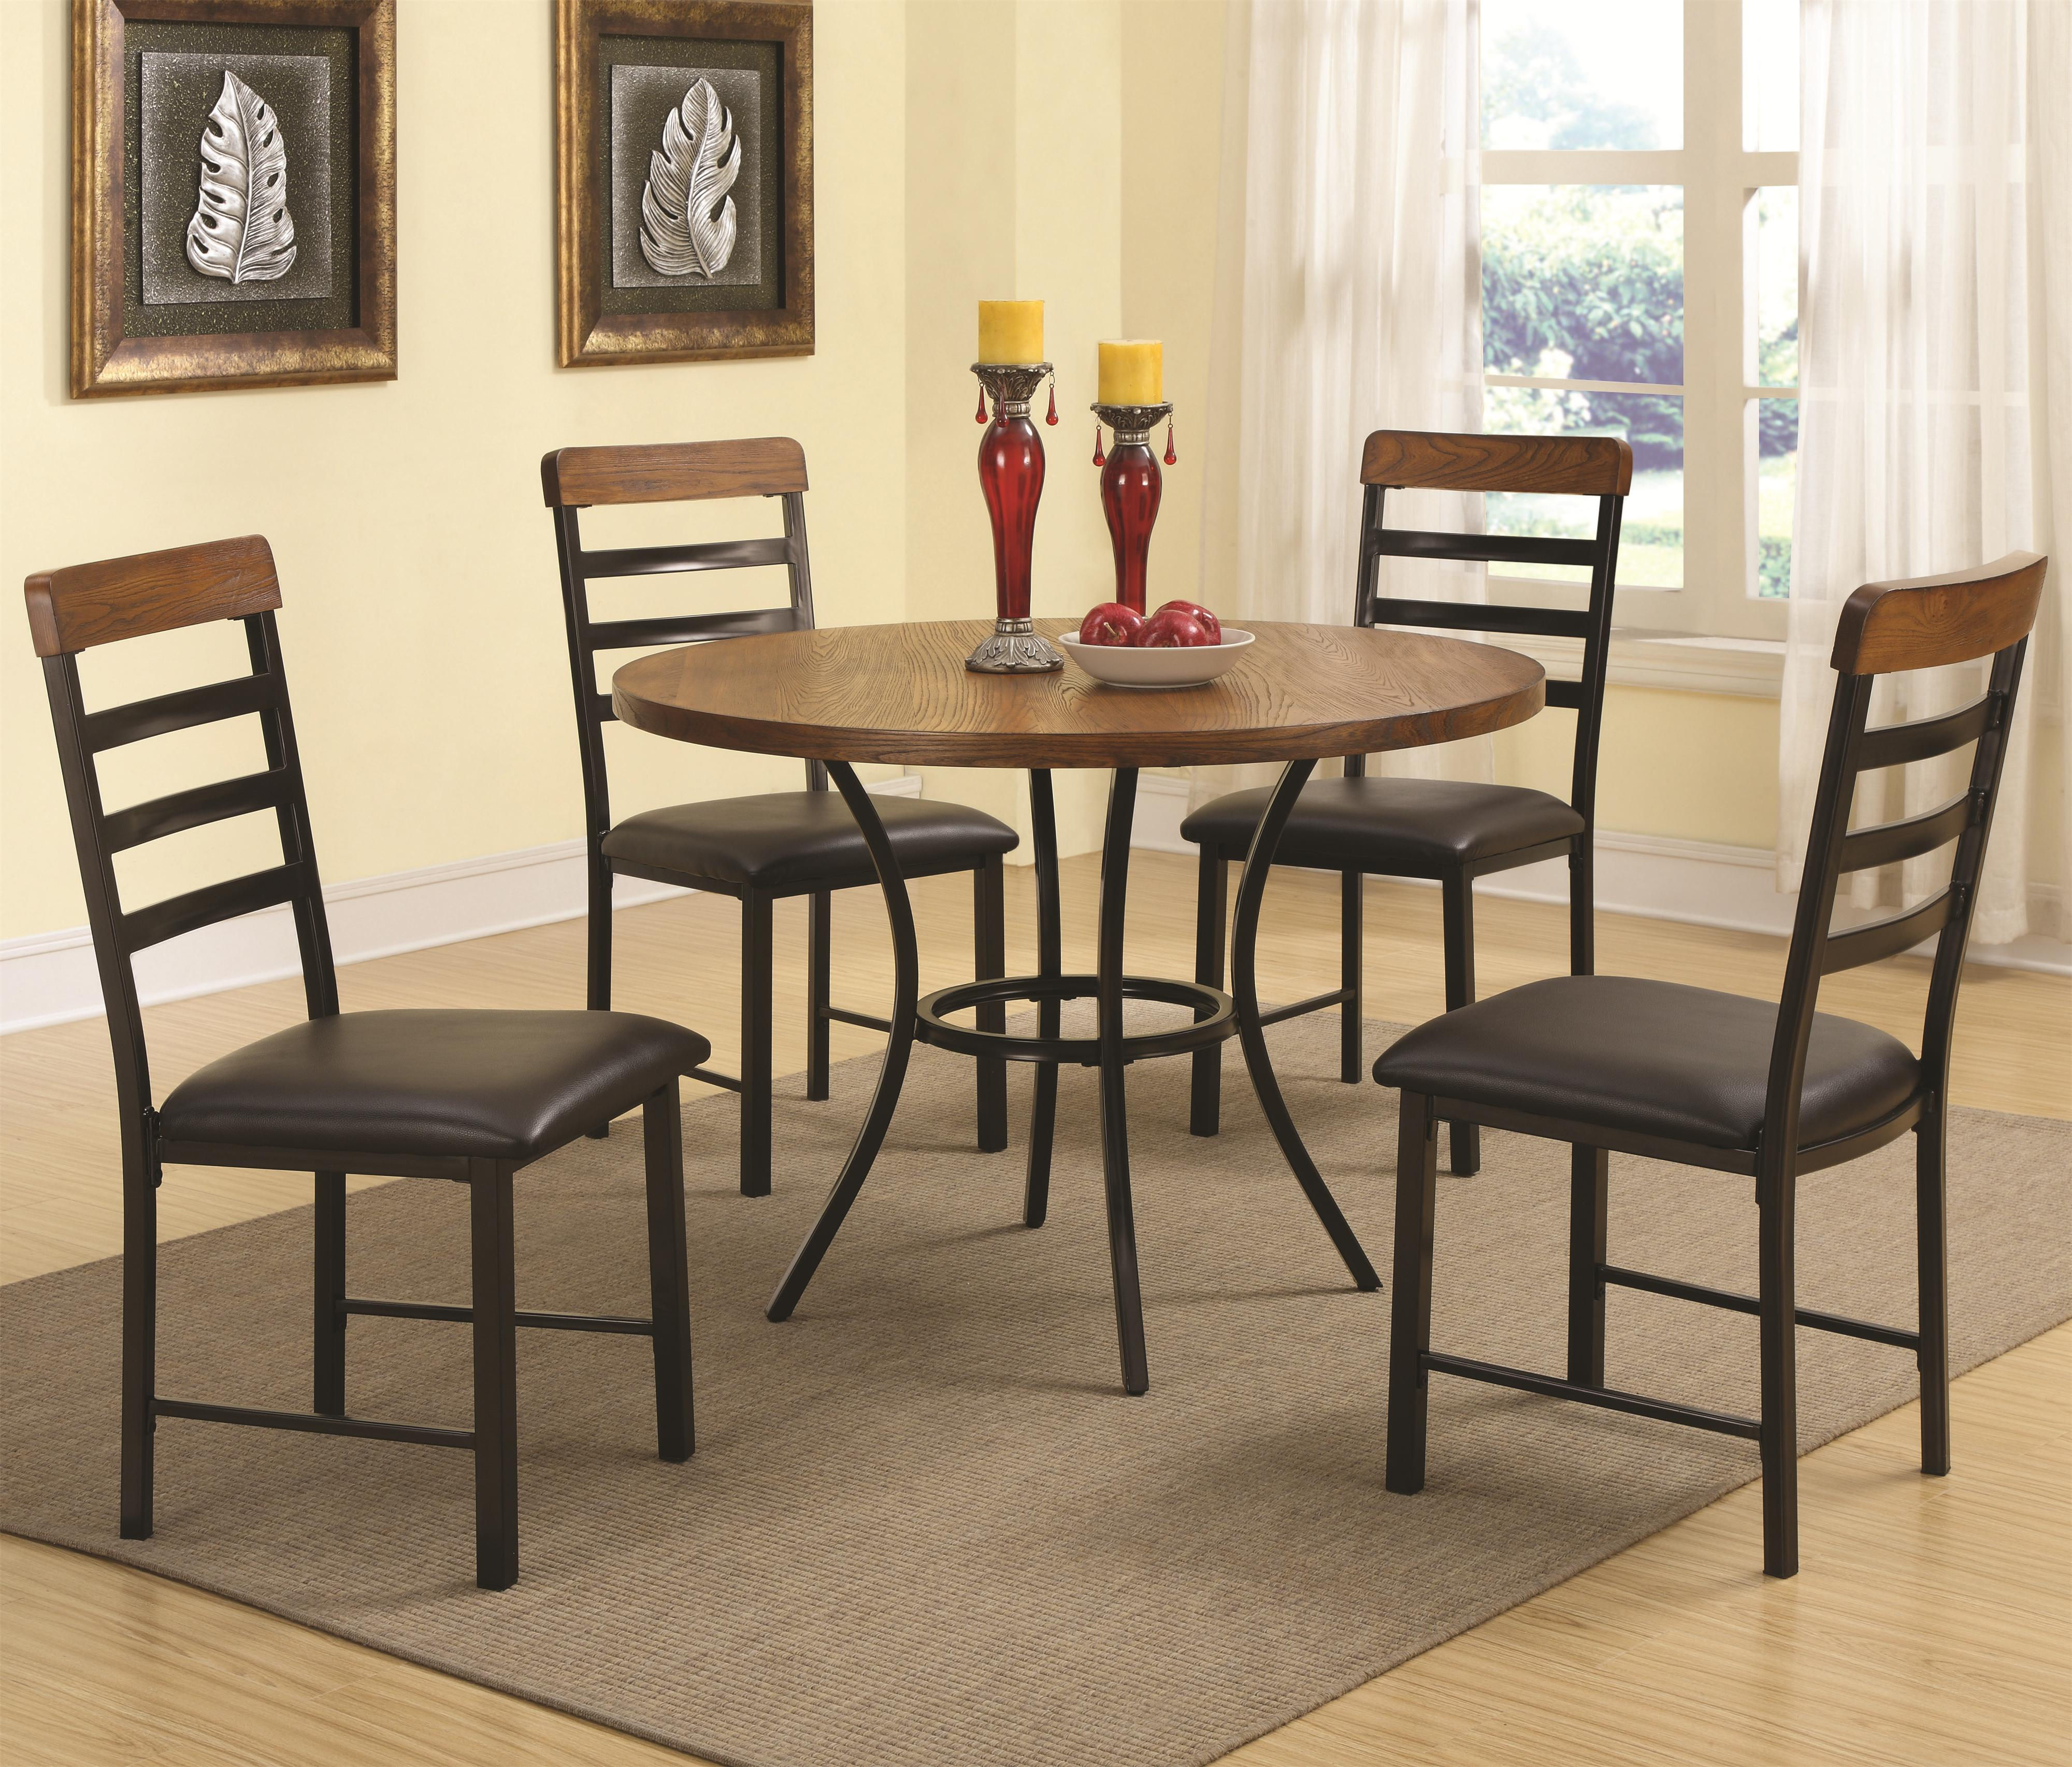 noah 5 piece dining set with round pedestal table and ladderback chairs quality furniture at. Black Bedroom Furniture Sets. Home Design Ideas